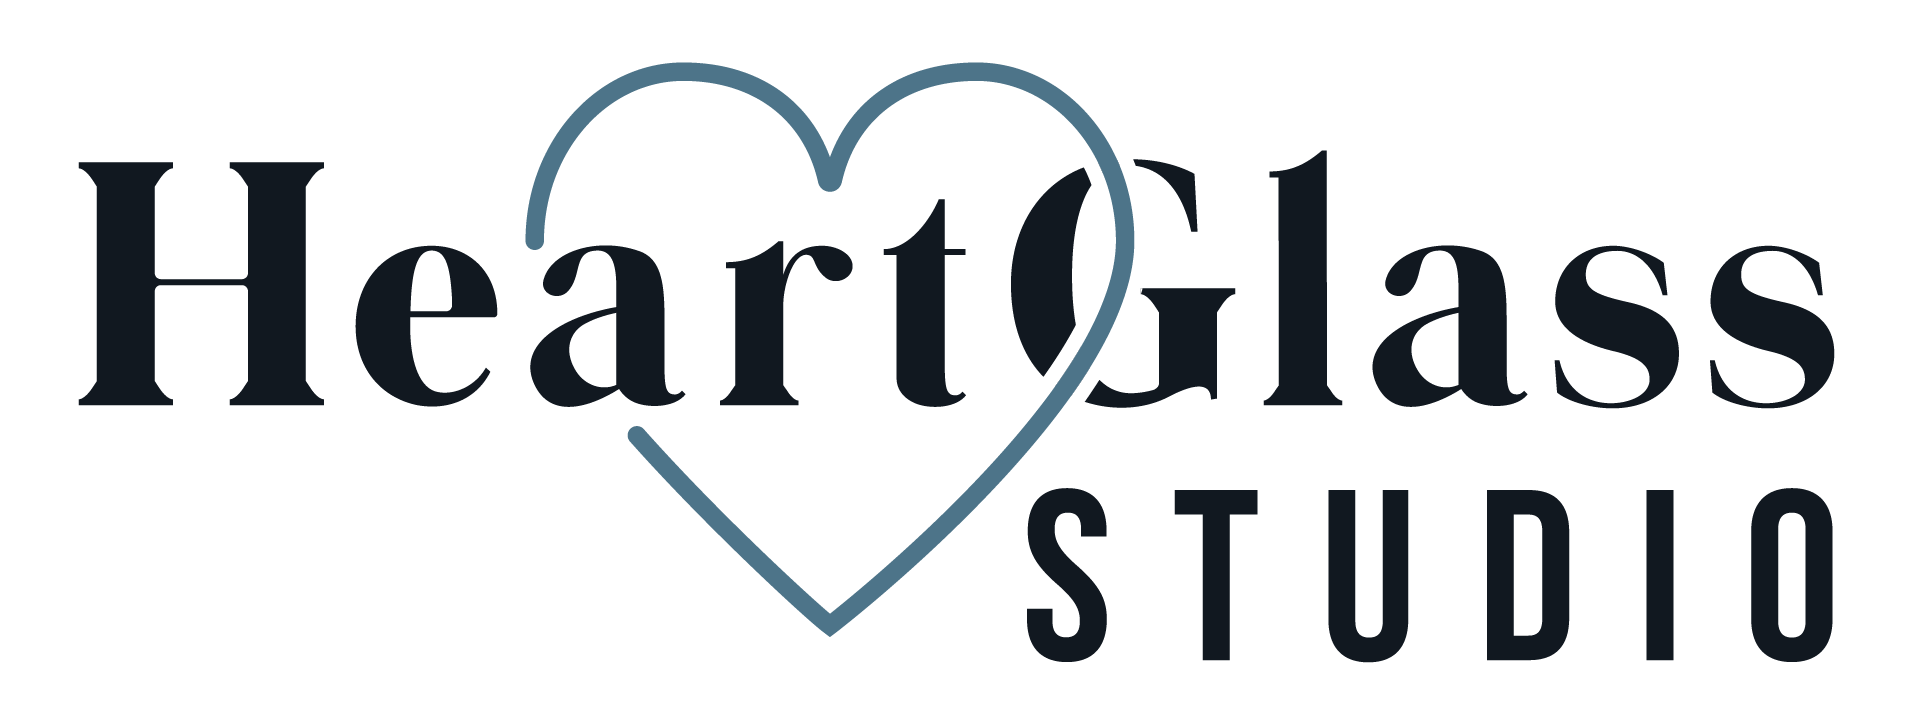 HeartGlass Studio